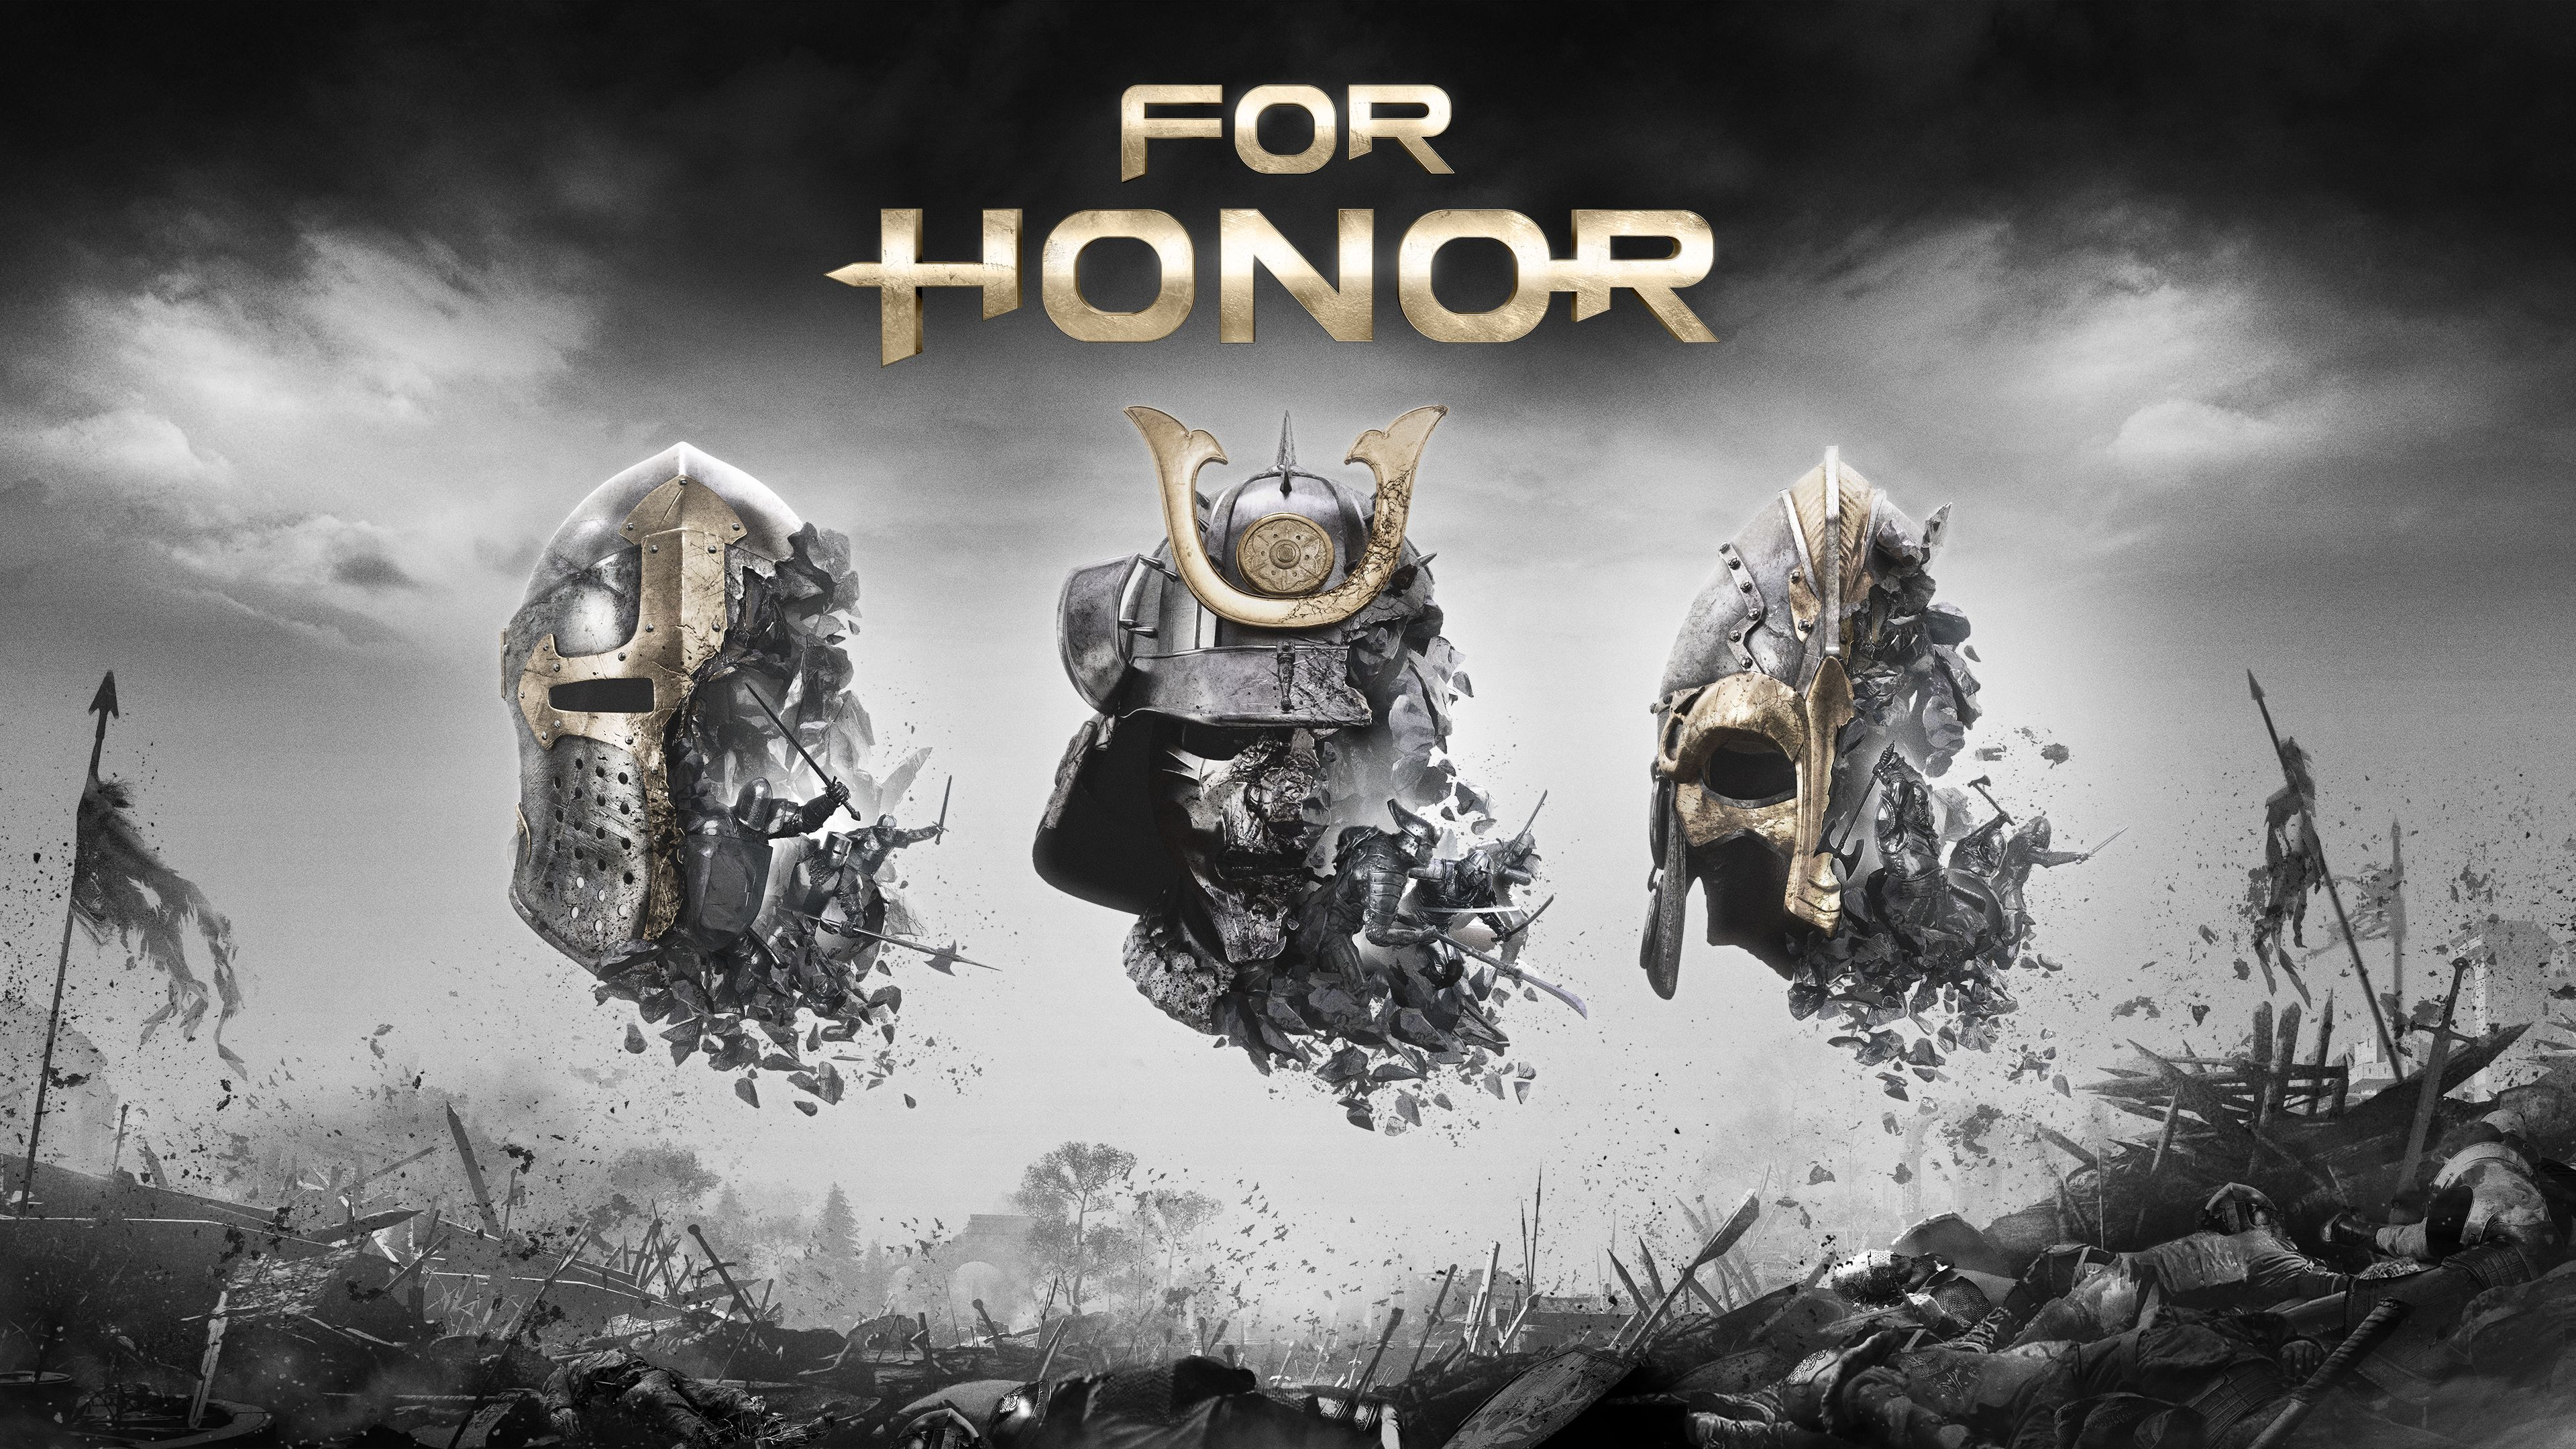 For Honor 4k Ultra Hd Wallpaper Background Image 3840x2160 Id